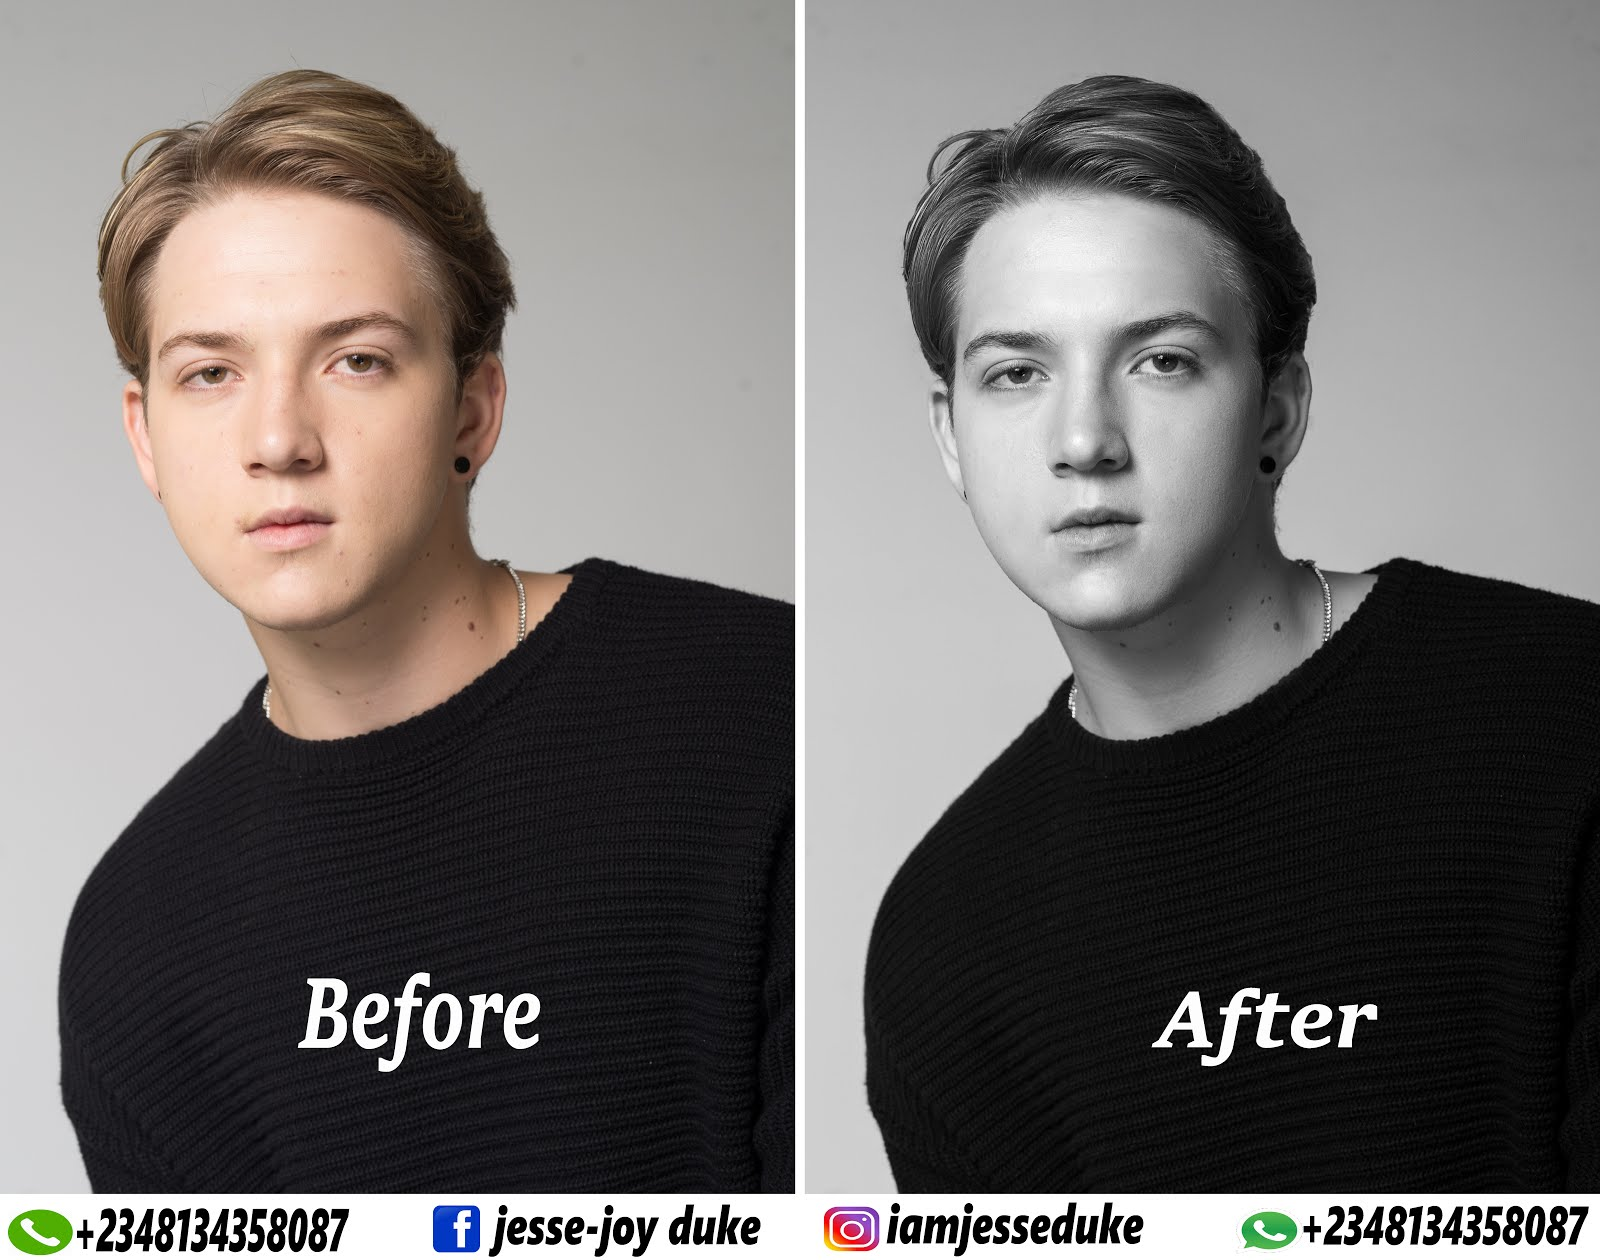 Get A Professional Retouch For Your Pictures